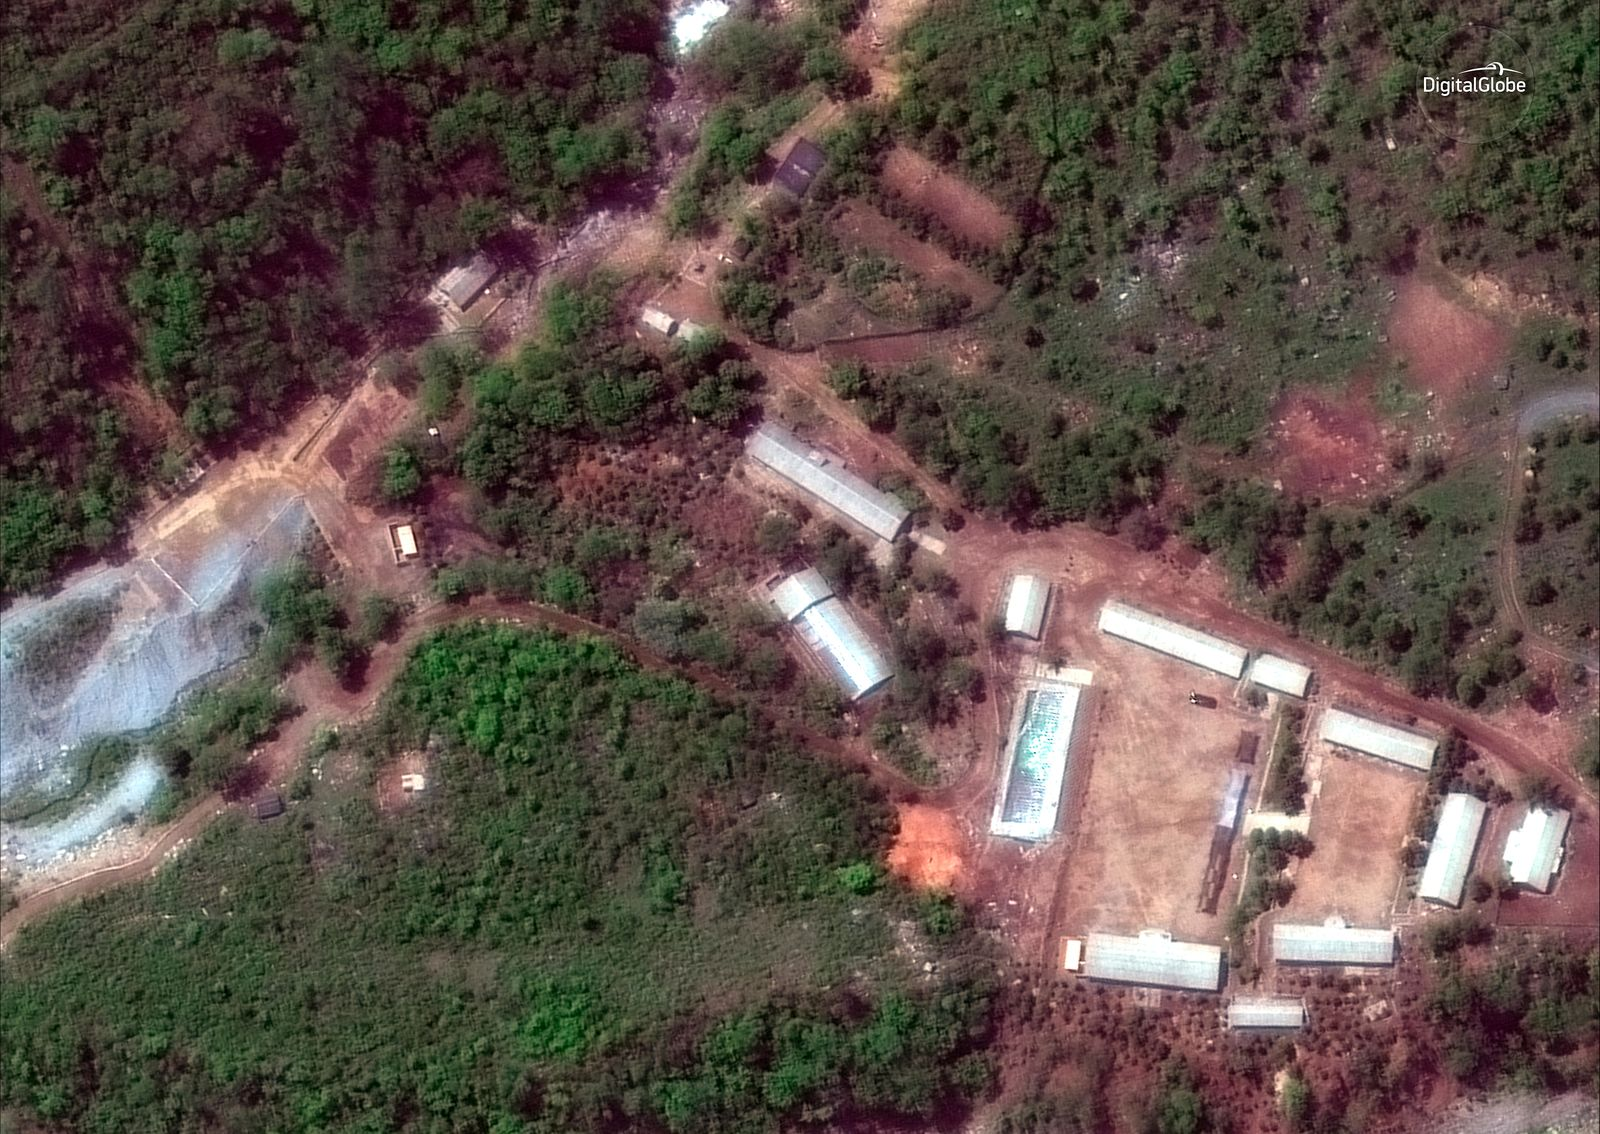 FILE - This Wednesday, May 23, 2018 satellite file image provided by DigitalGlobe, shows the Punggye-ri test site in North Korea. North Korea has carried out what it says is the demolition of its nuclear test site in the presence of foreign journalists. (DigitalGlobe via AP, File)